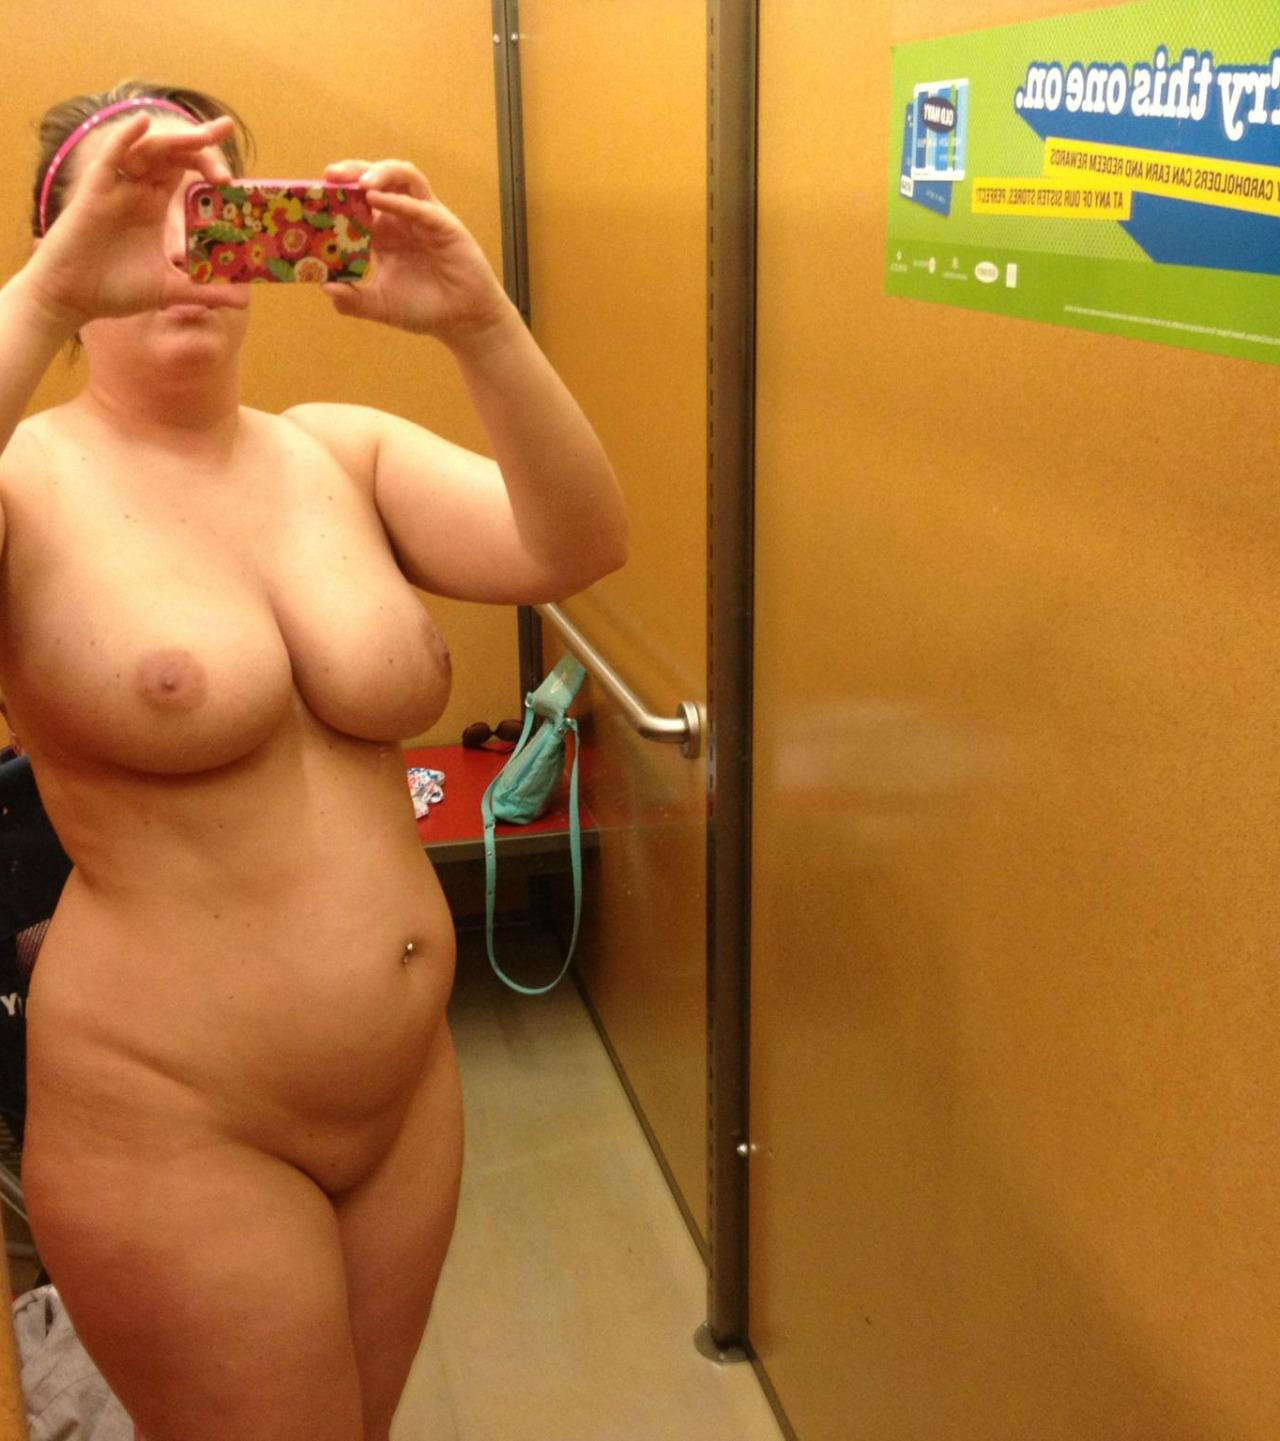 Chubby mature does sexy self shot while naked in changing room. Amateur fat wife bares her big boobs during self shot in dressing room